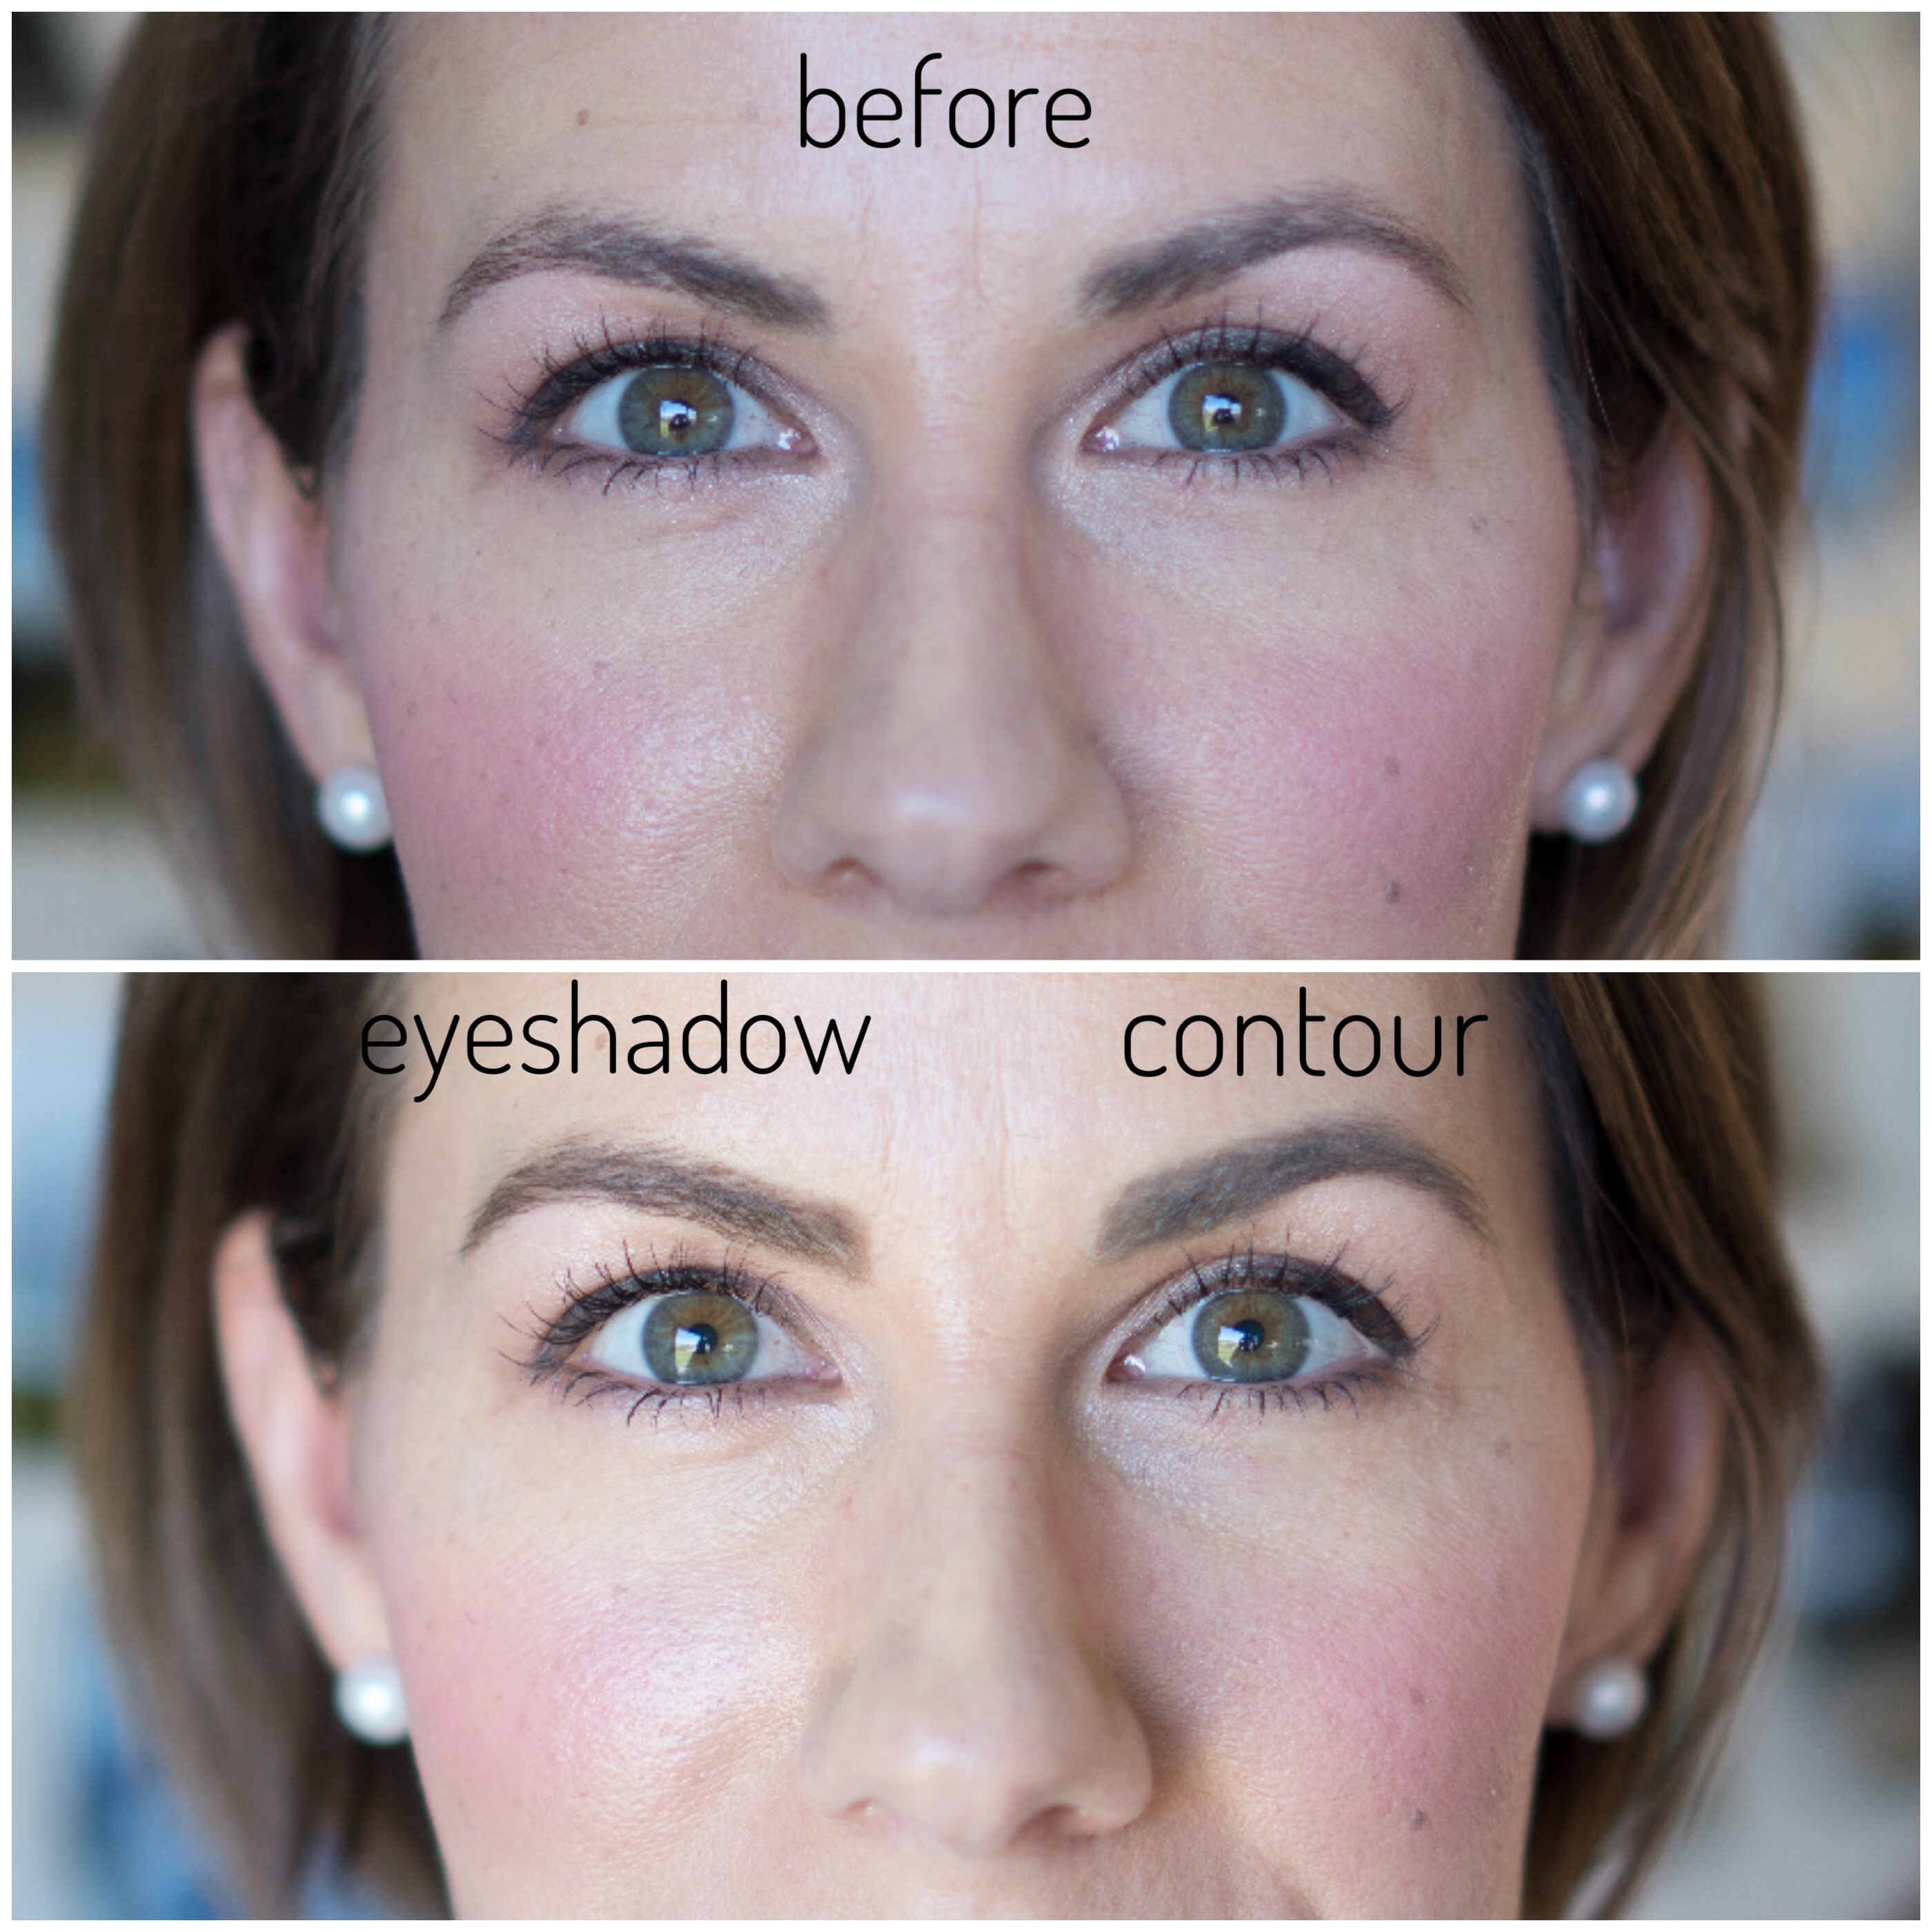 How to Get the Best Brows, learn how to maintain and beautify your brows with Maskcara Beauty Girl at www.maskcarabeautygirl.com